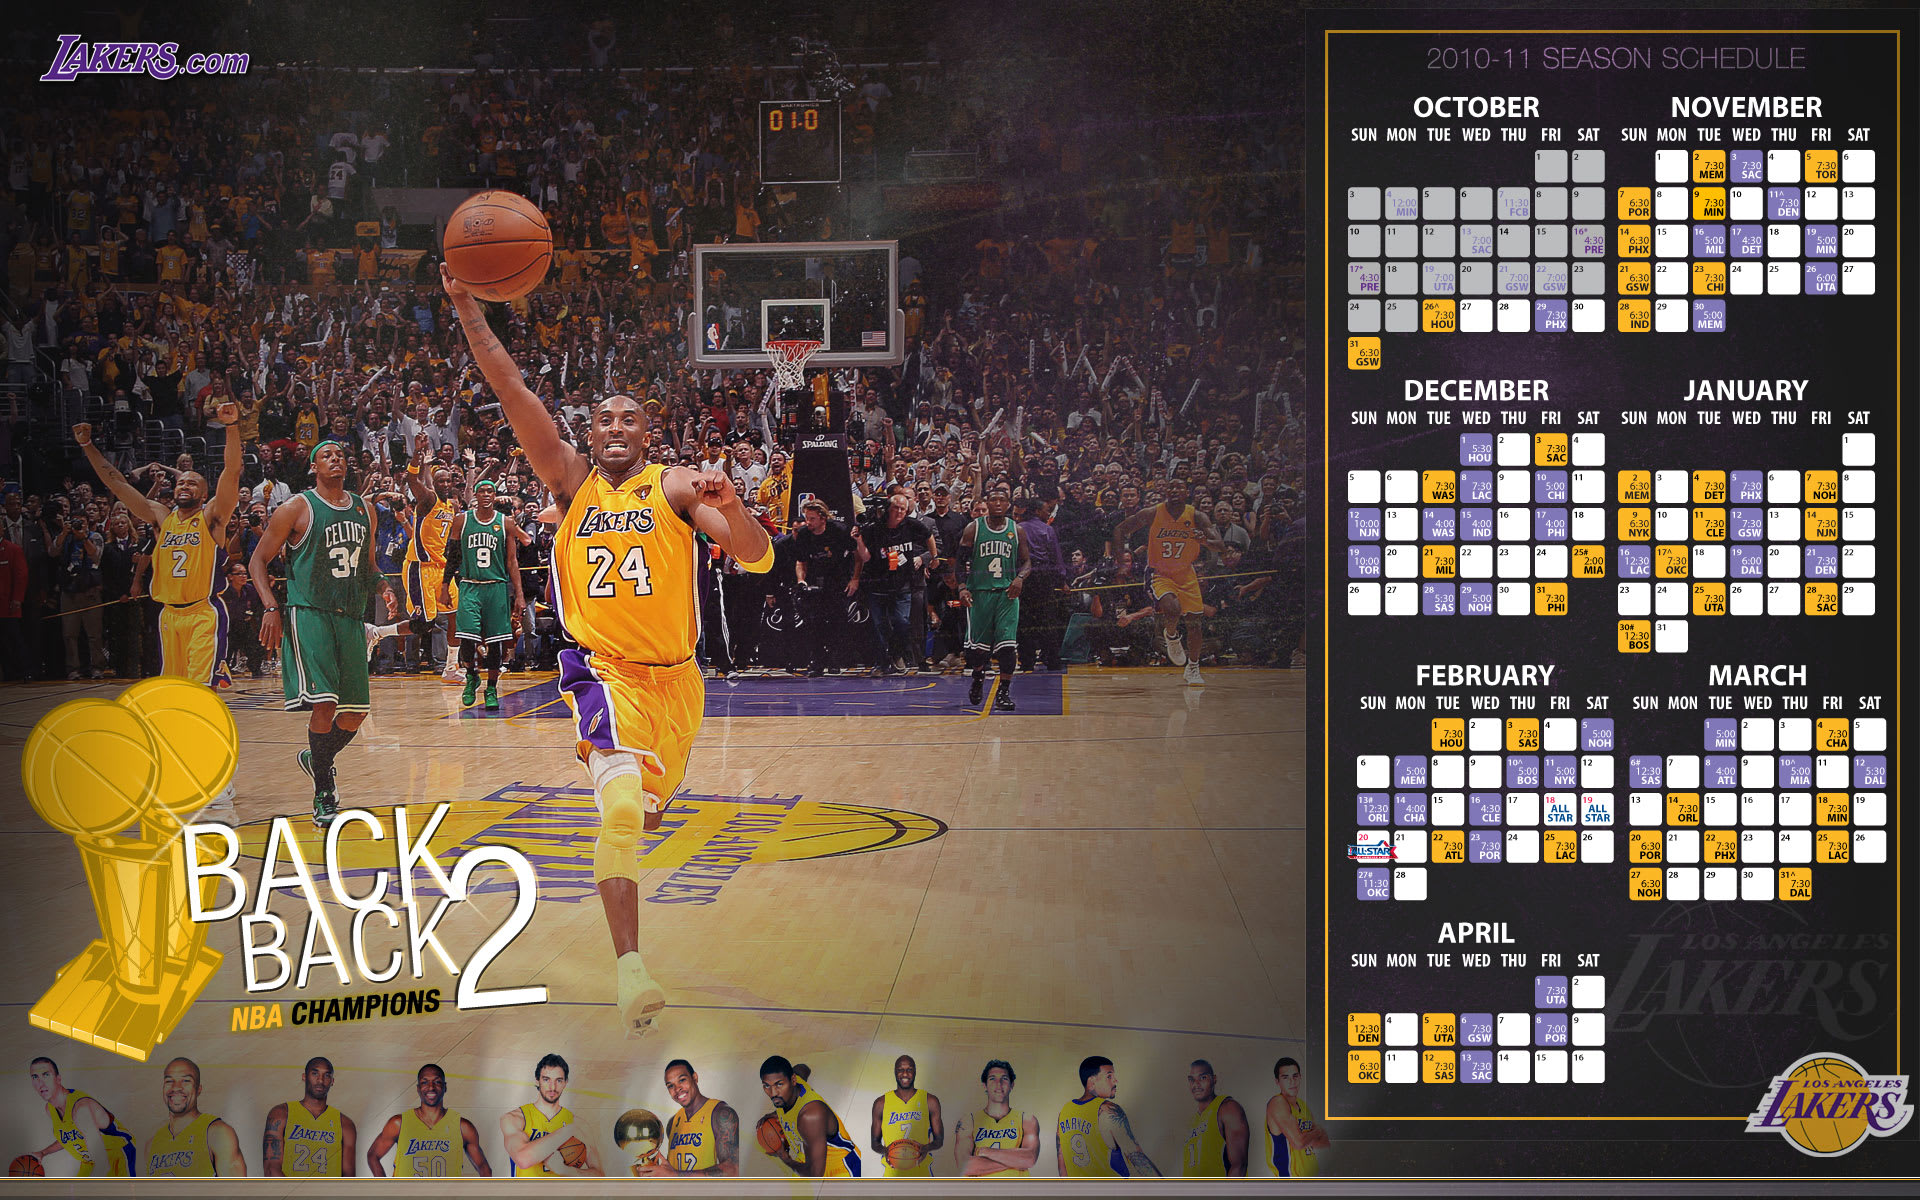 LA Lakers 2010-11 Schedule